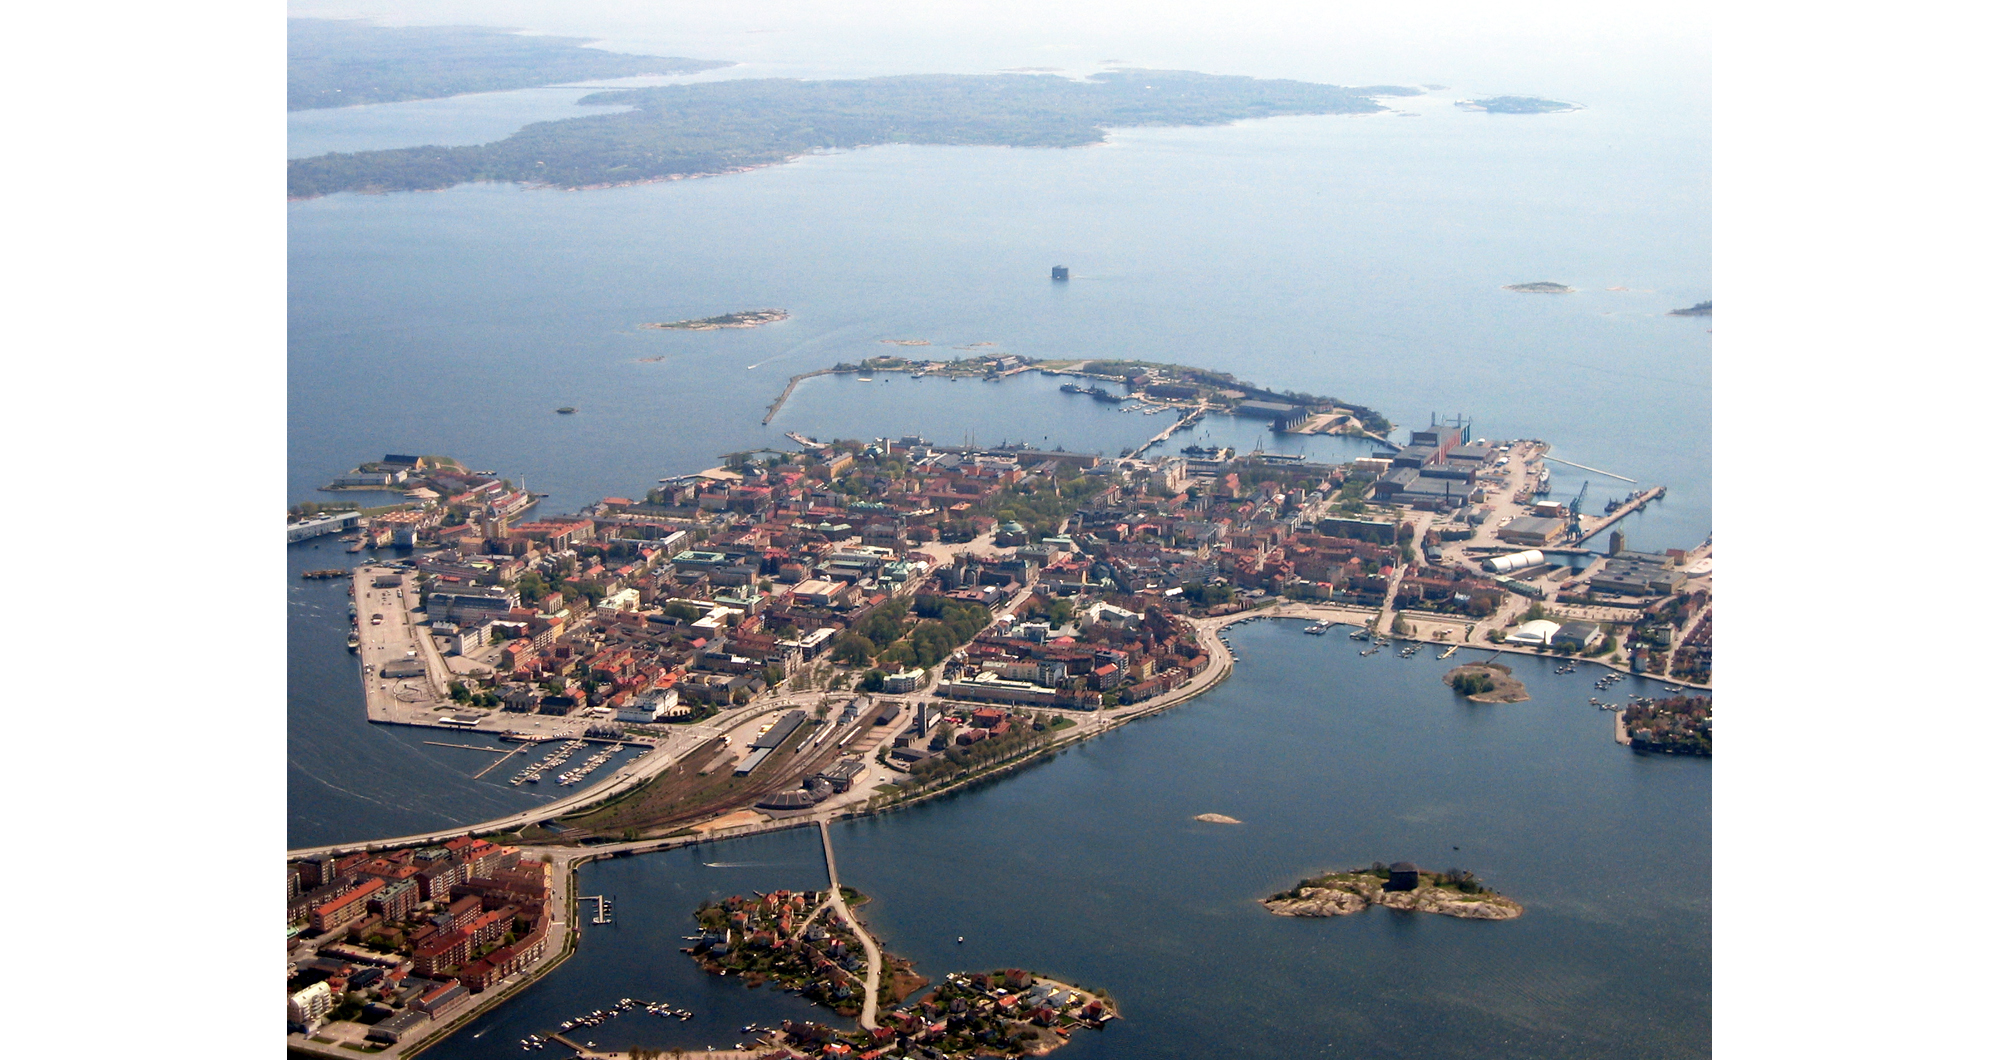 Karlskrona. Heritage and Diversity.